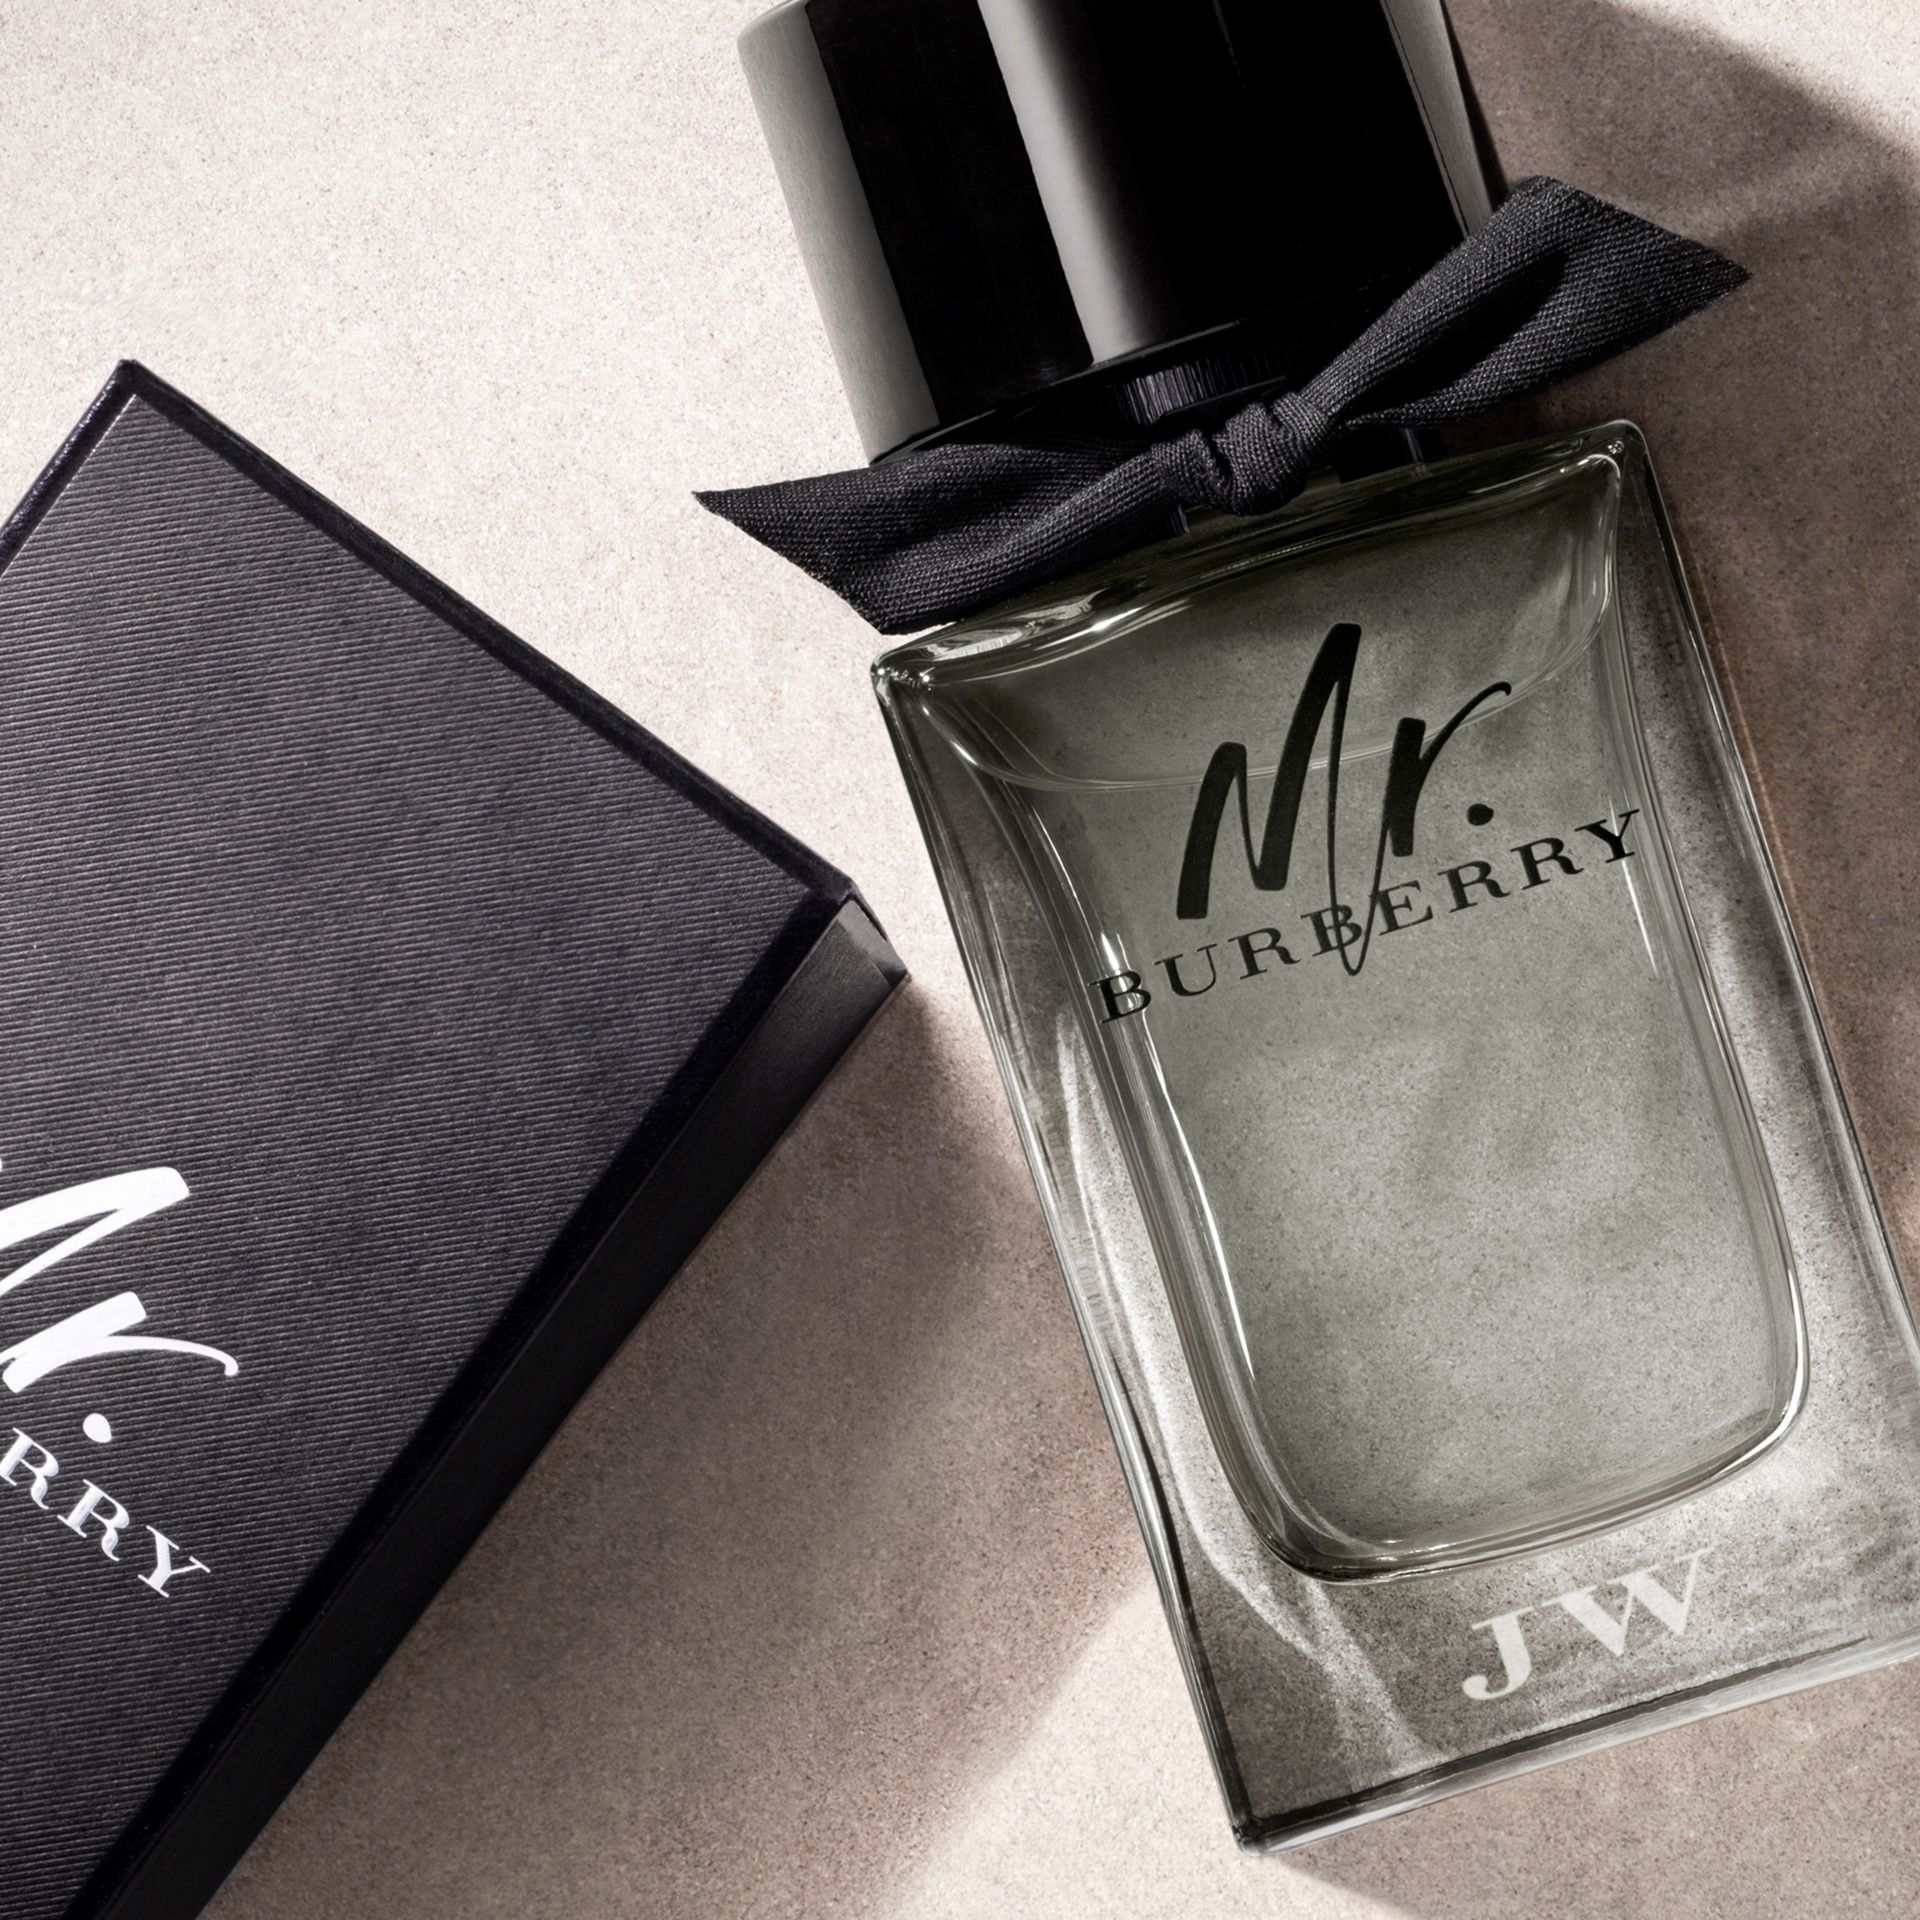 Mr. Burberry Eau de Toilette Gift Set - gallery image 3